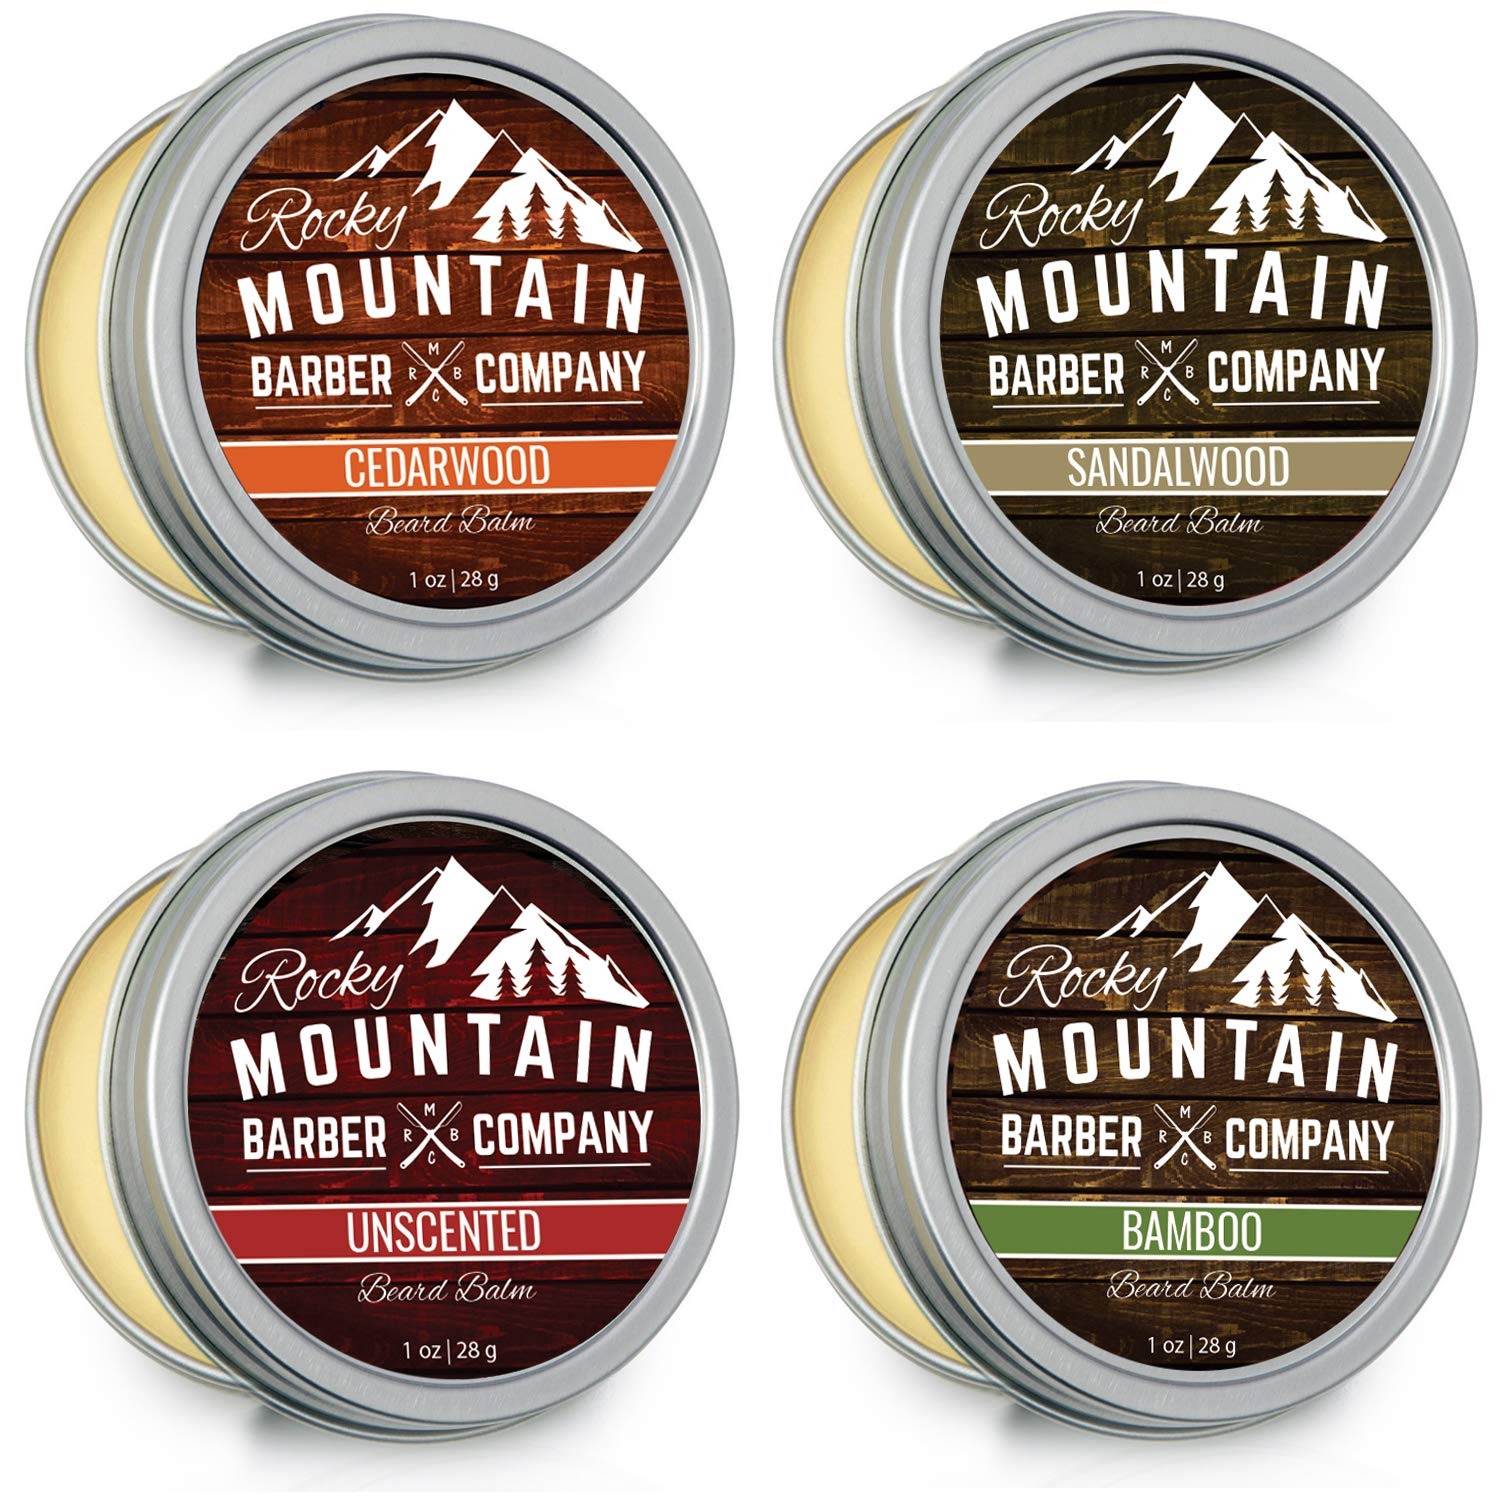 Beard Balm Variety Pack - 4 Beard Balm Samples (1 oz each) Made with Natural Oils, Butters & Rich in Vitamins & Minerals - Argan Oil, Shea Butter, Coconut Oil, Jojoba Oil to Hydrate, Condition